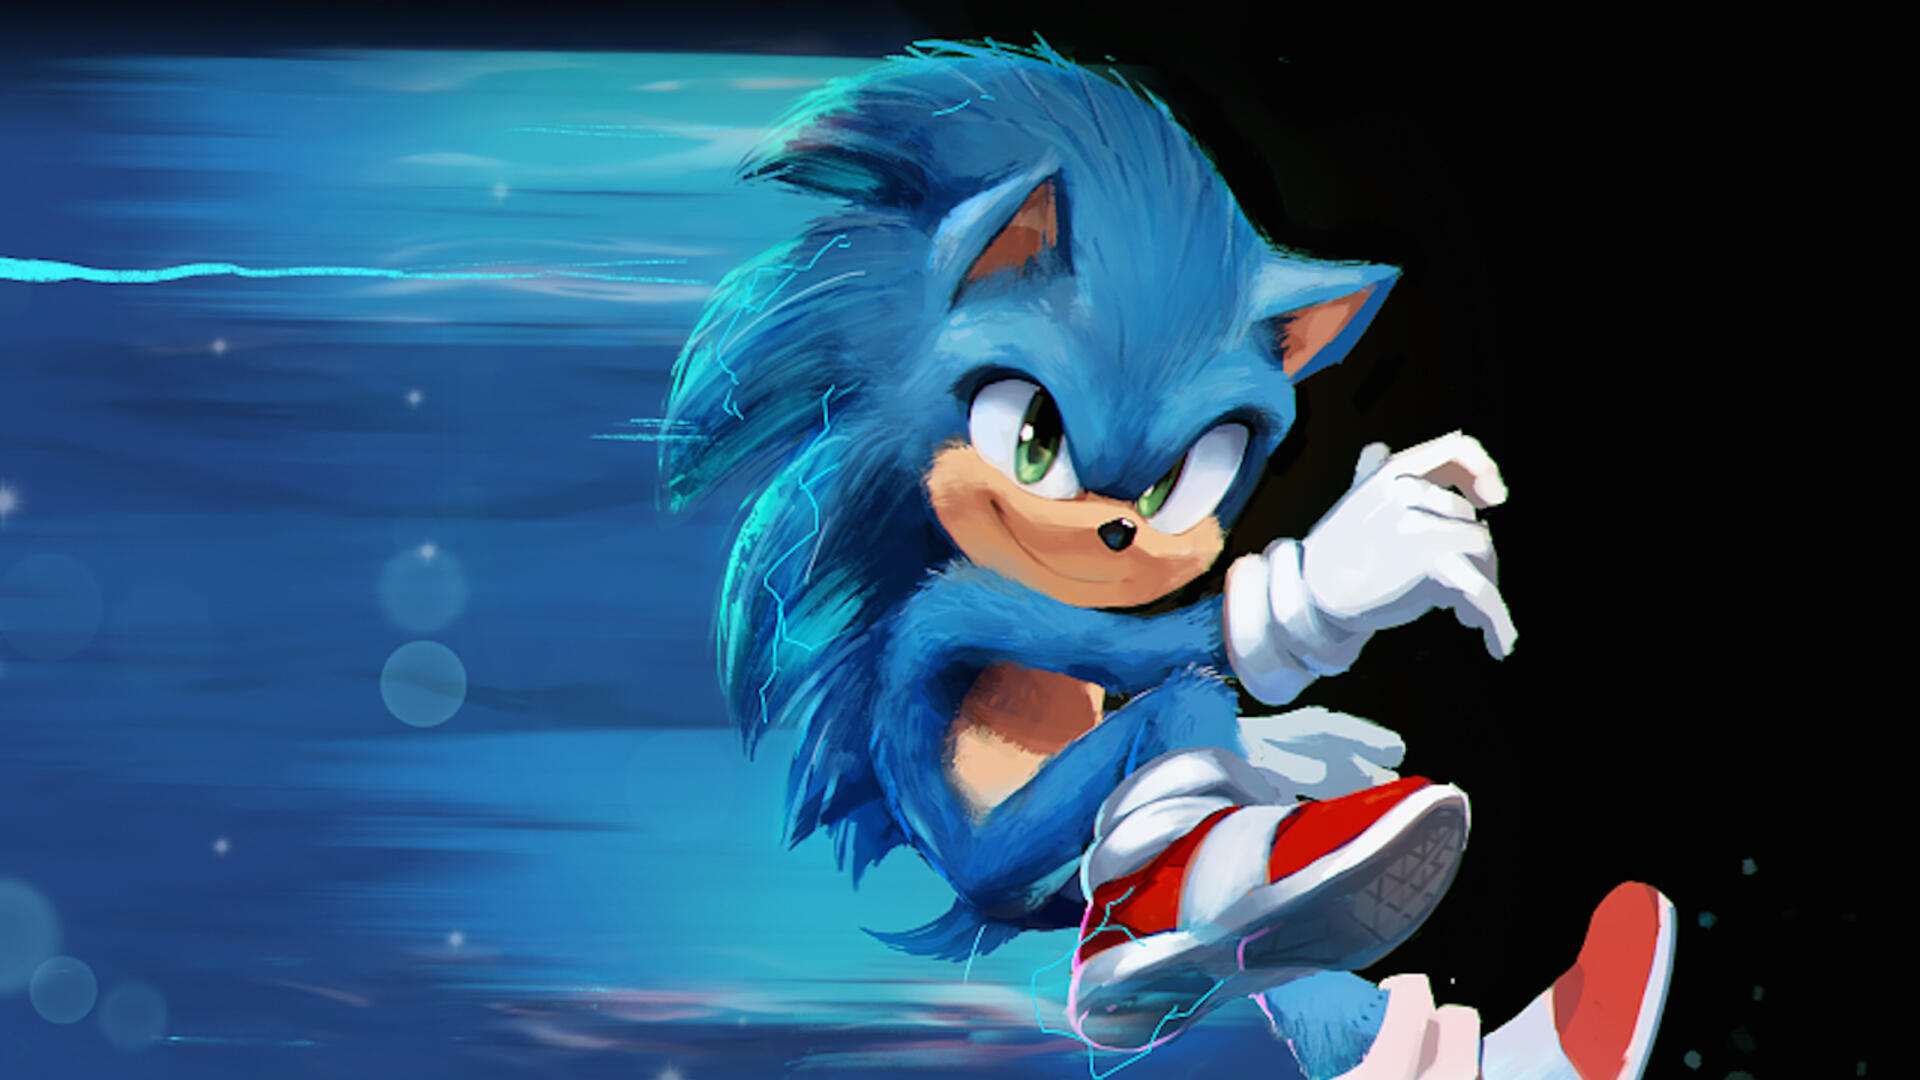 The Artist Who Led Movie Sonic S Redesign Has A Long History